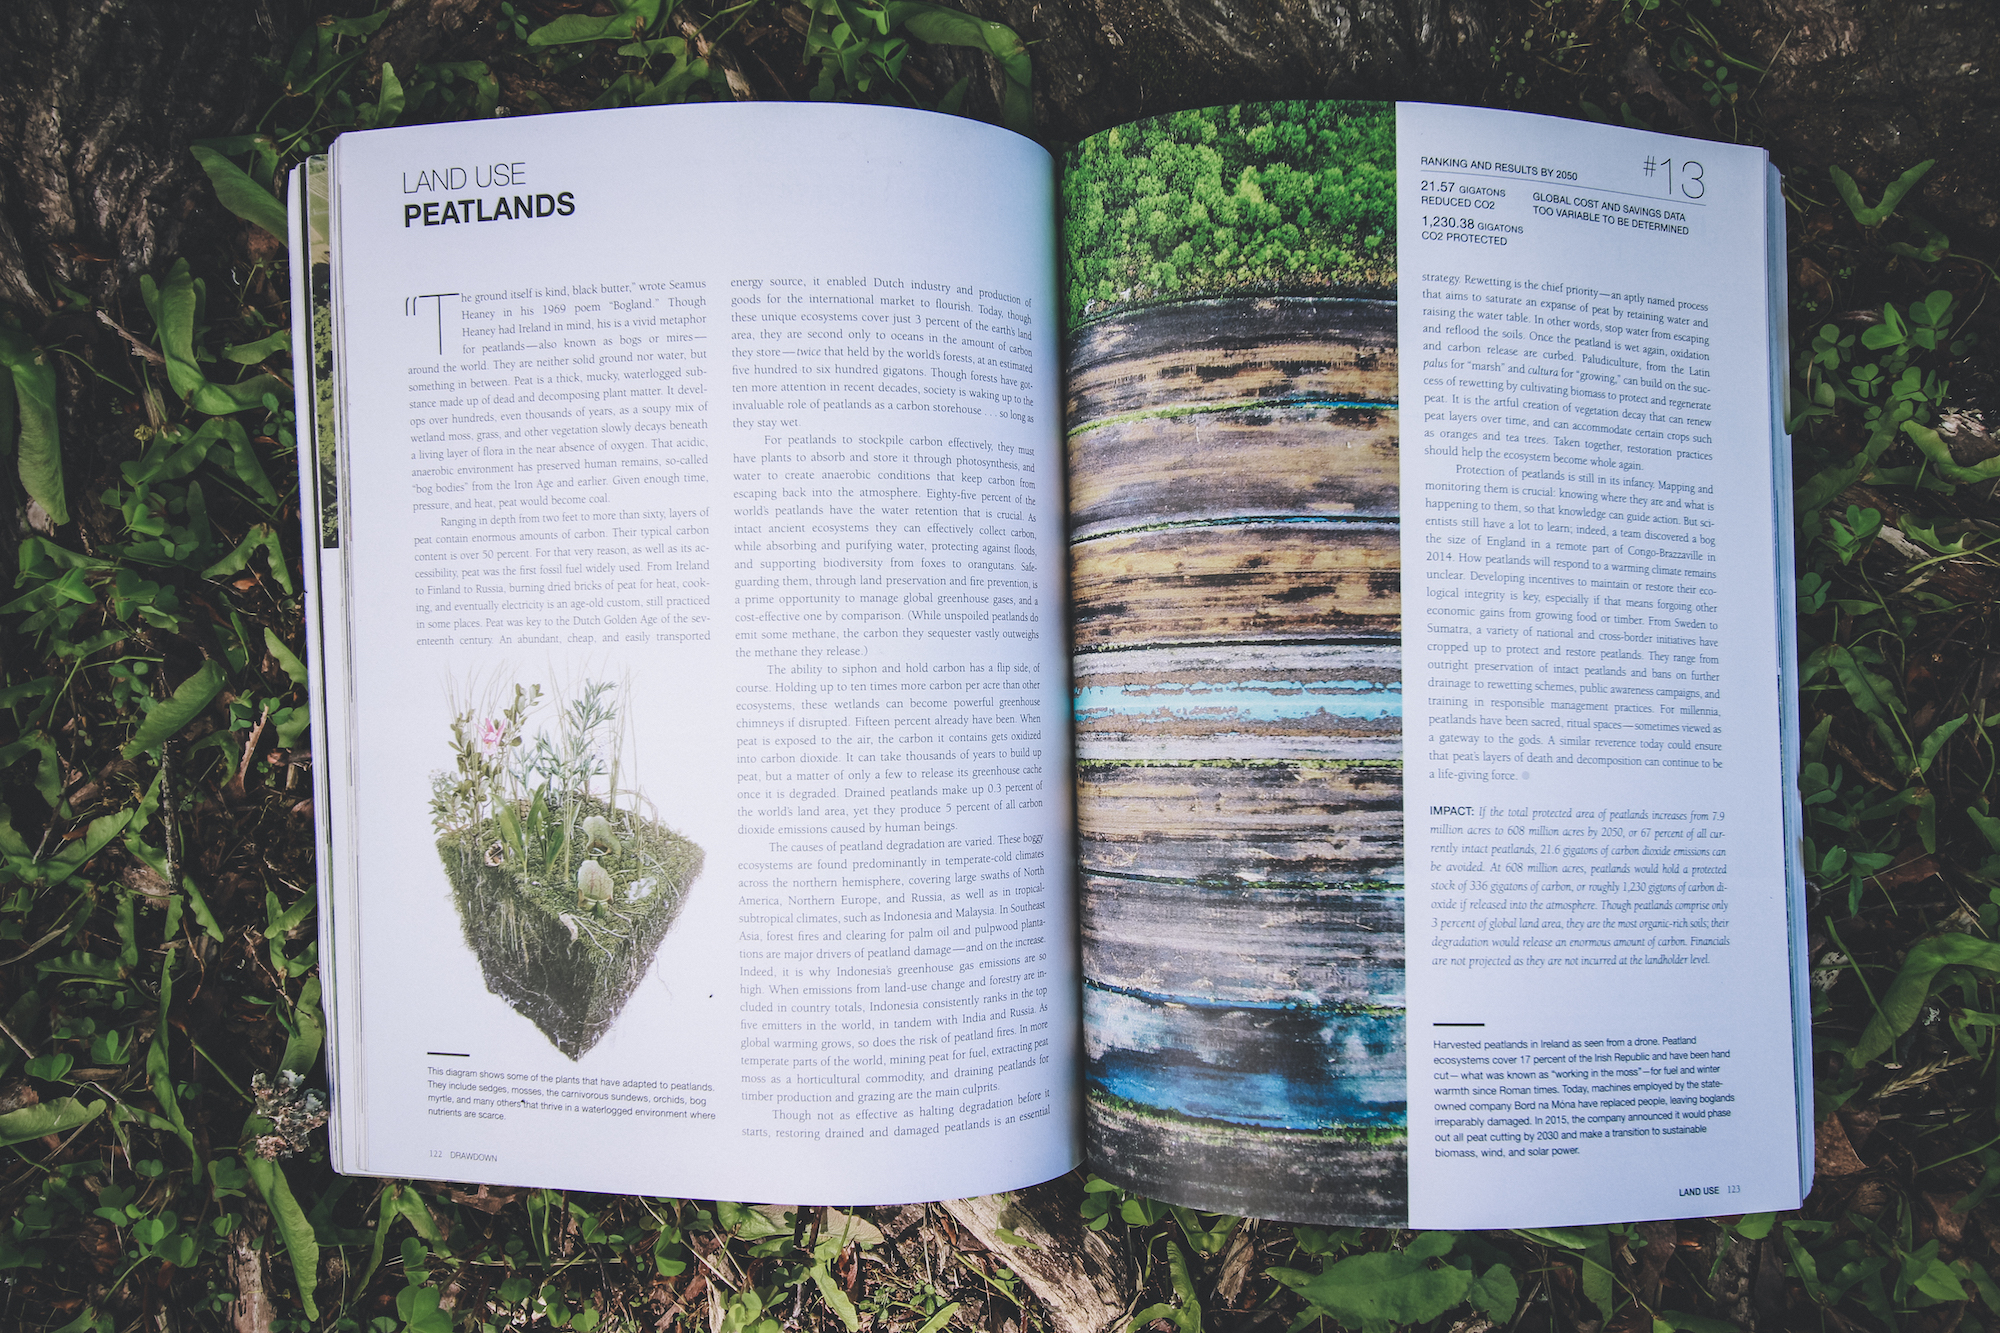 Open Drawdown book on a grassy forest floor, open to the pages about managing peatlands to address global warming